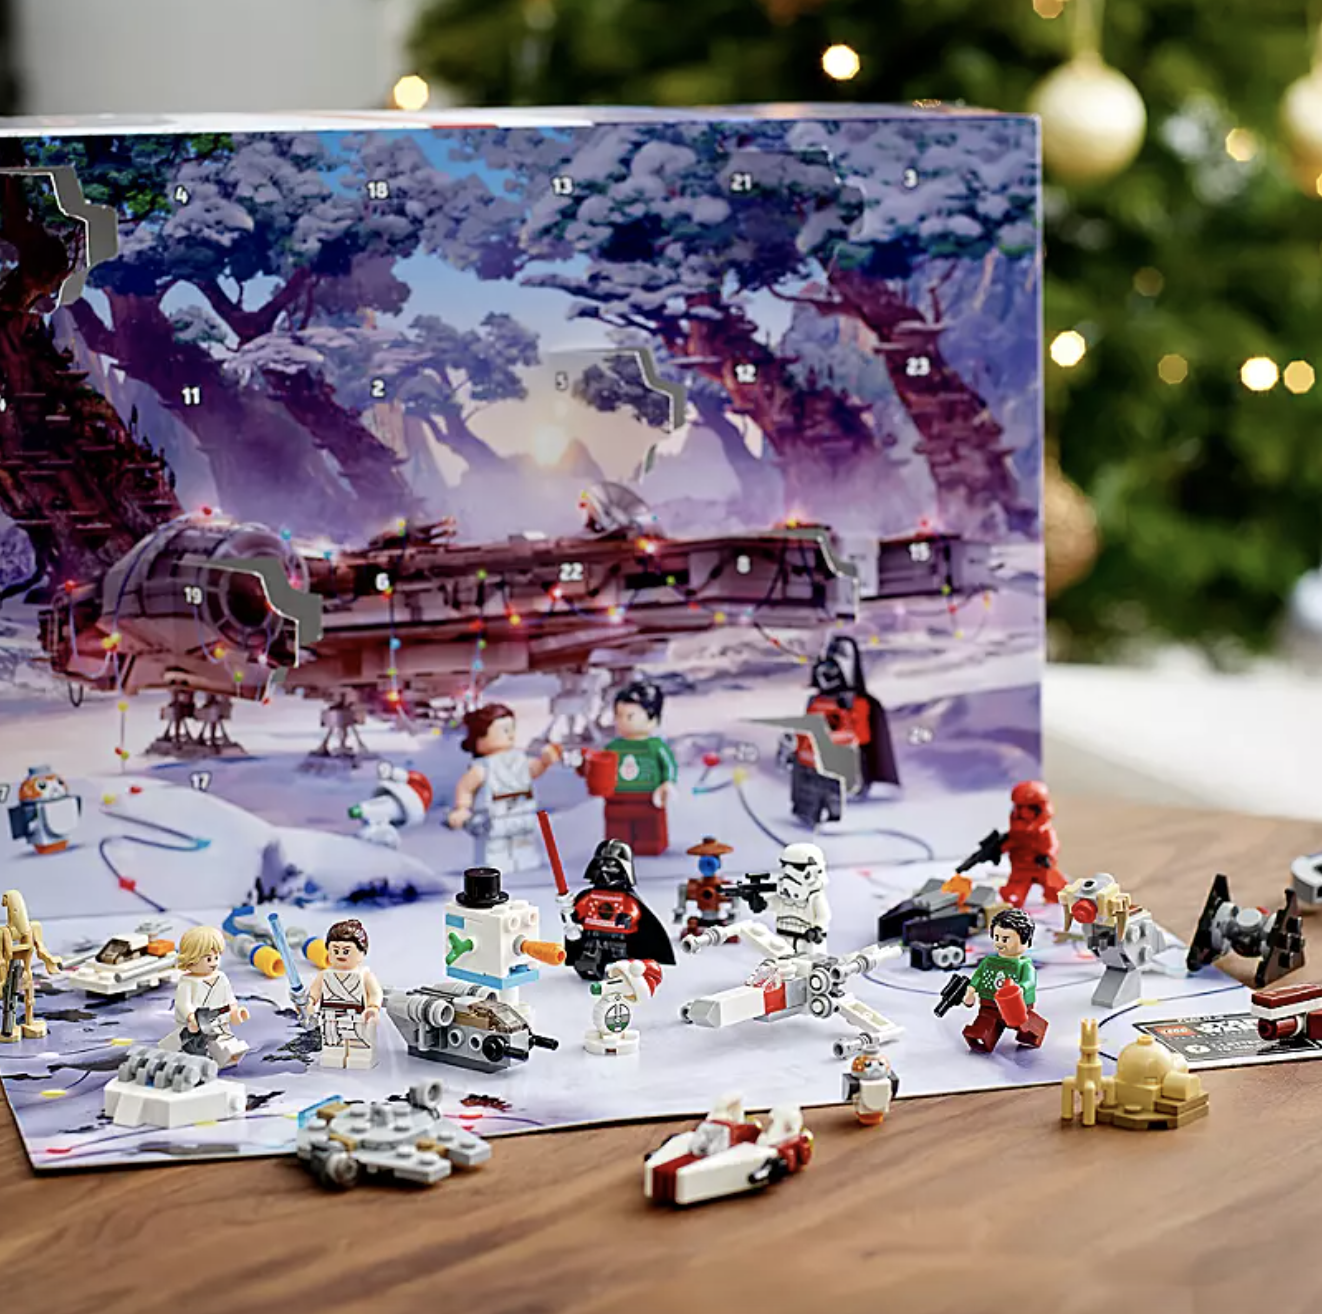 the advent calendar which depicts a festive star wars scene behind an array of the lego figures found in the calendar